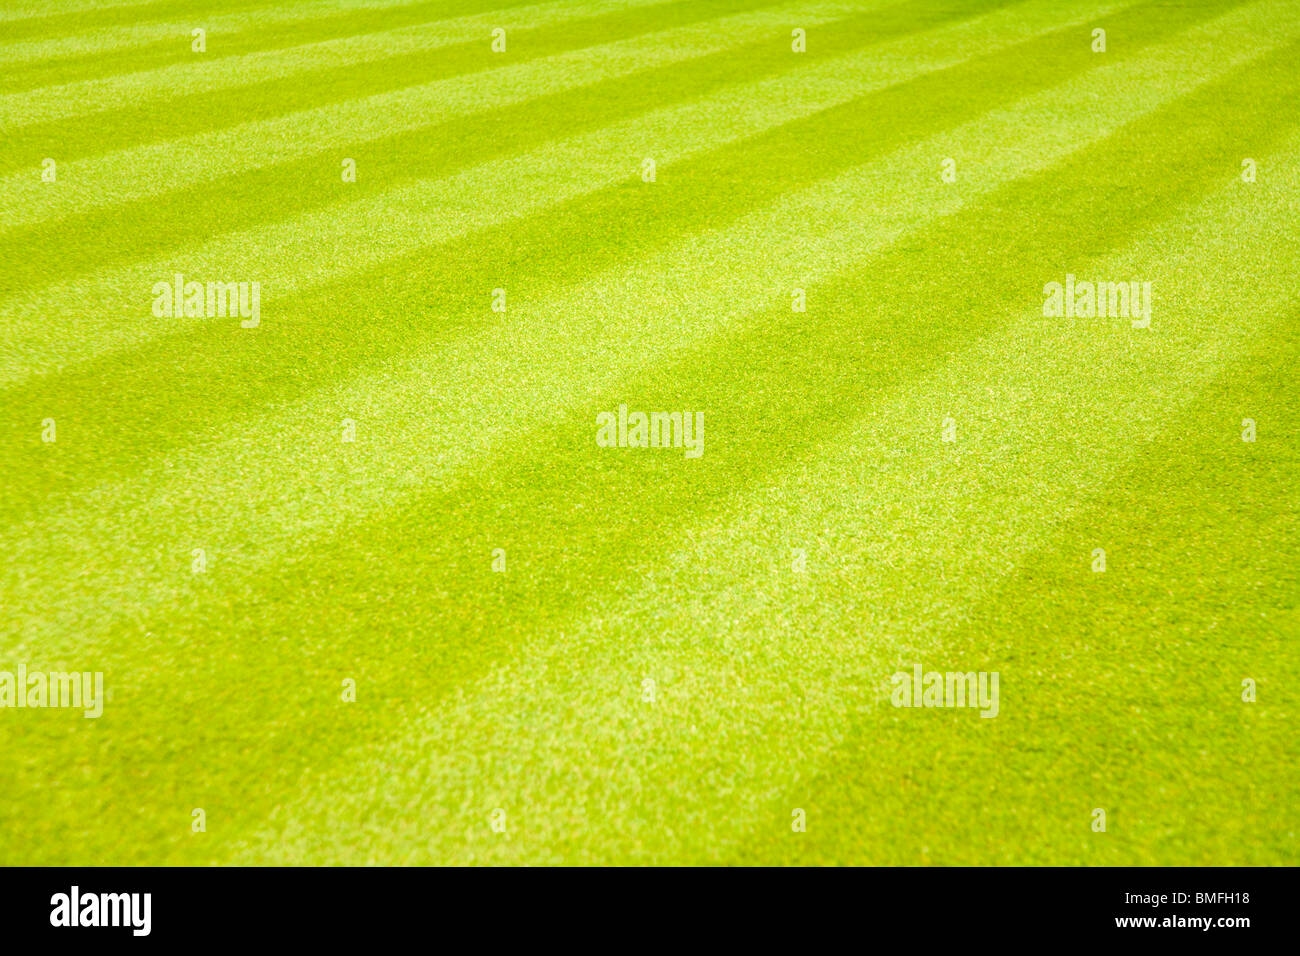 Stripy Lawn With Striped Grass. - Stock Image